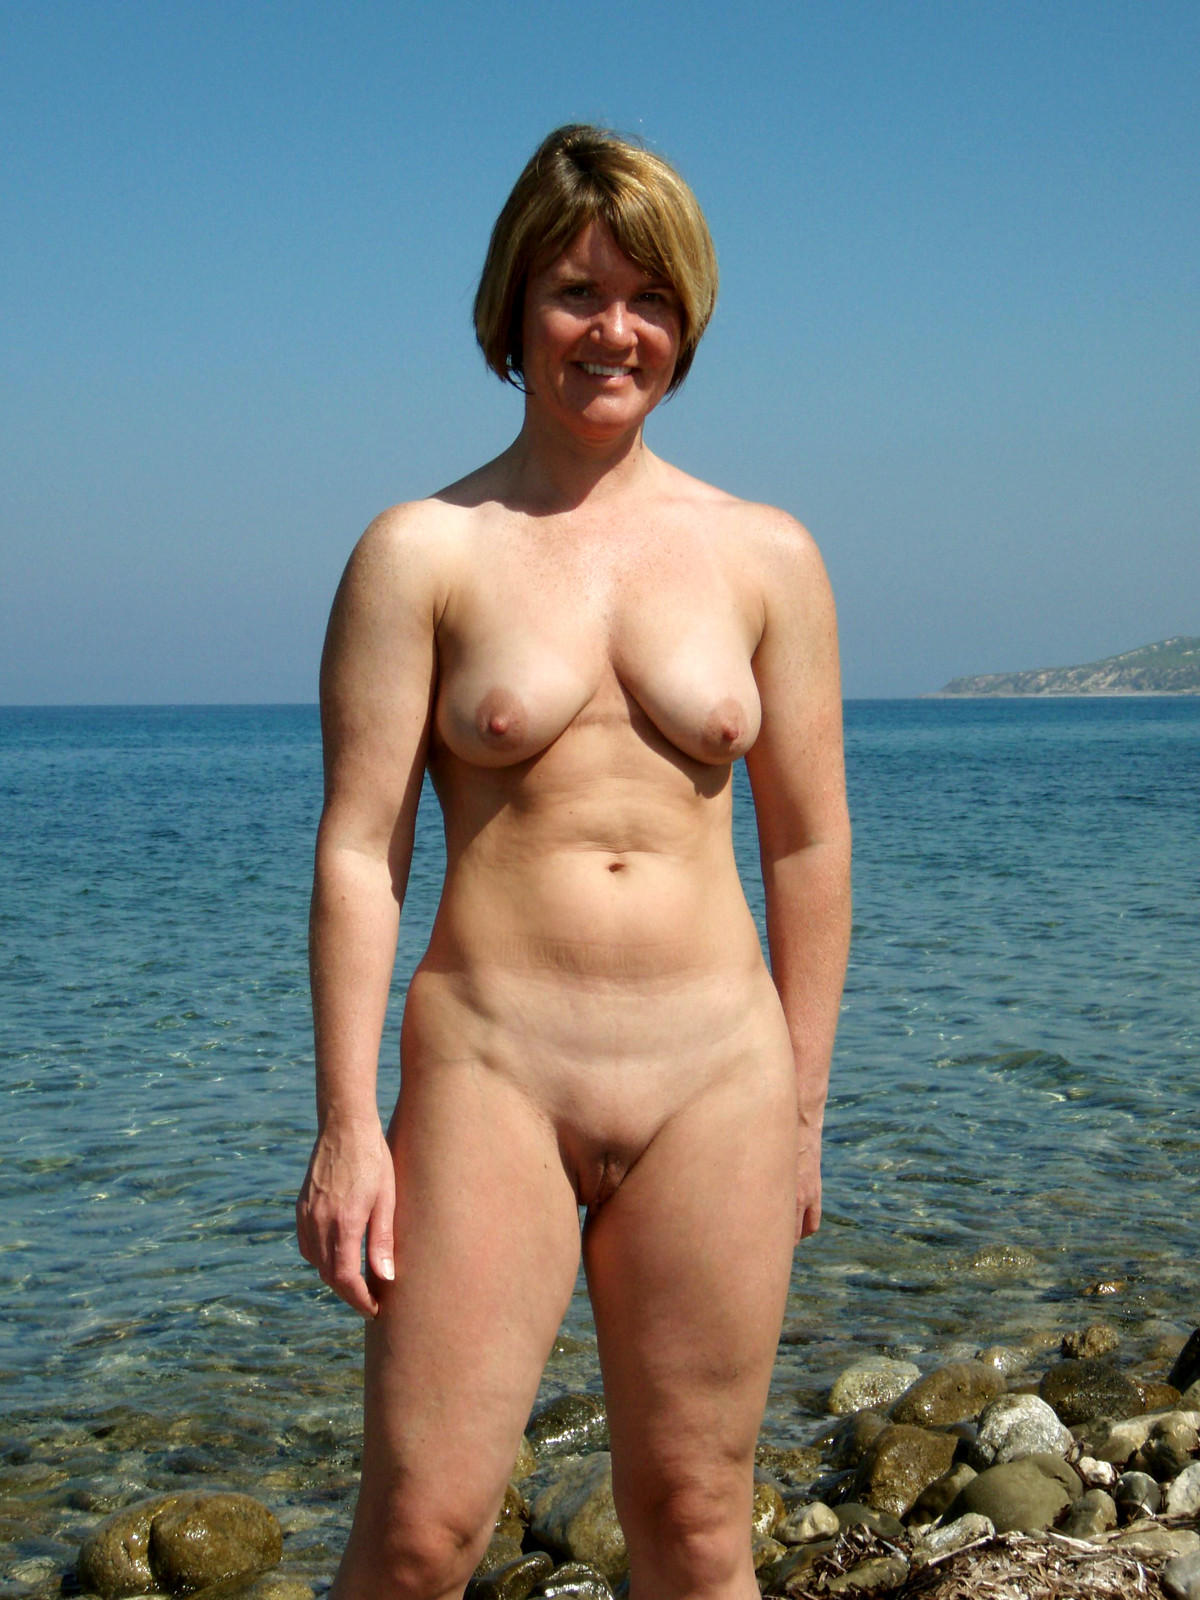 Nudist lady pictures